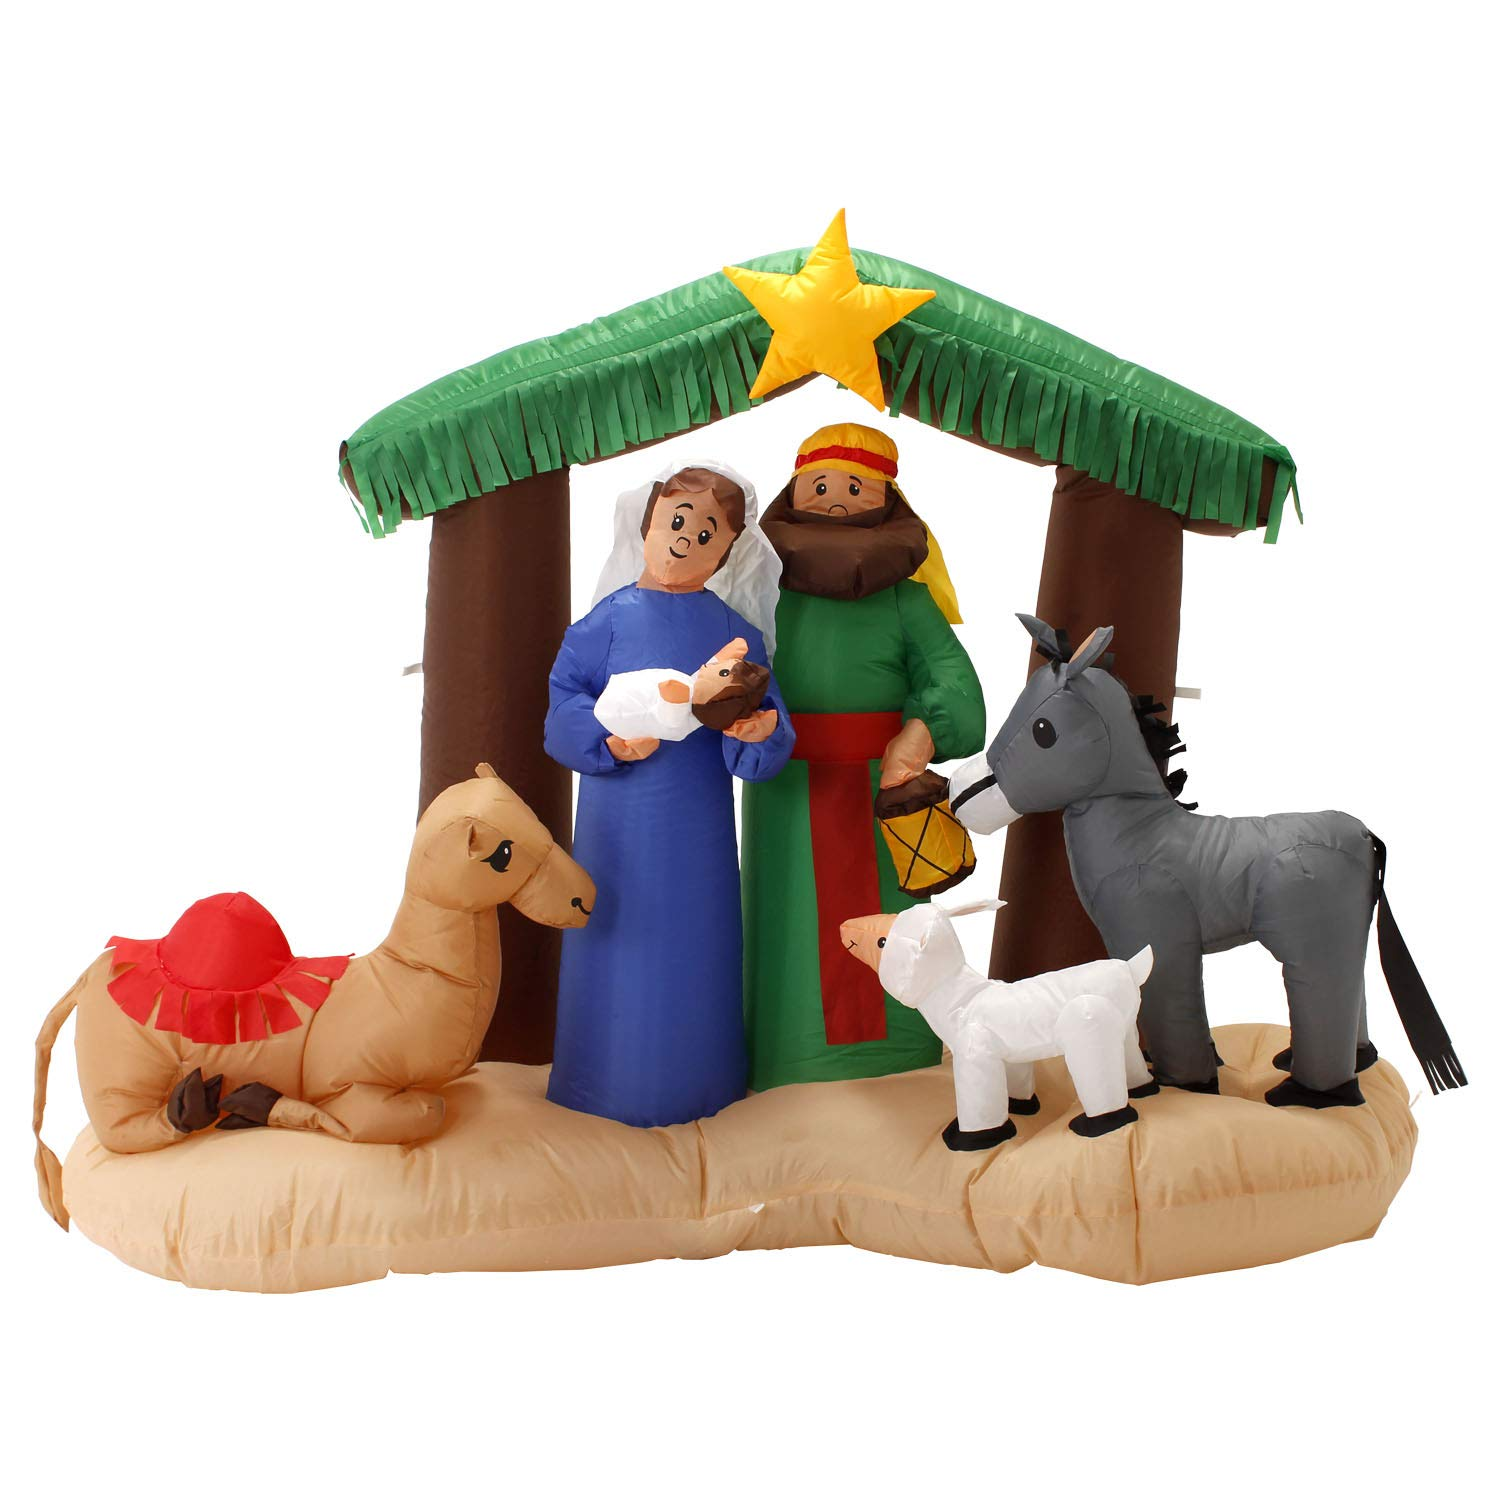 TCP Global Christmas Masters 6 Foot Wide Inflatable Holy Nativity Scene LED Lights Indoor Outdoor Yard Lawn Decoration - Mary, Joseph, Baby Jesus Xmas Holiday Party Blow Up Display by TCP Global (Image #1)